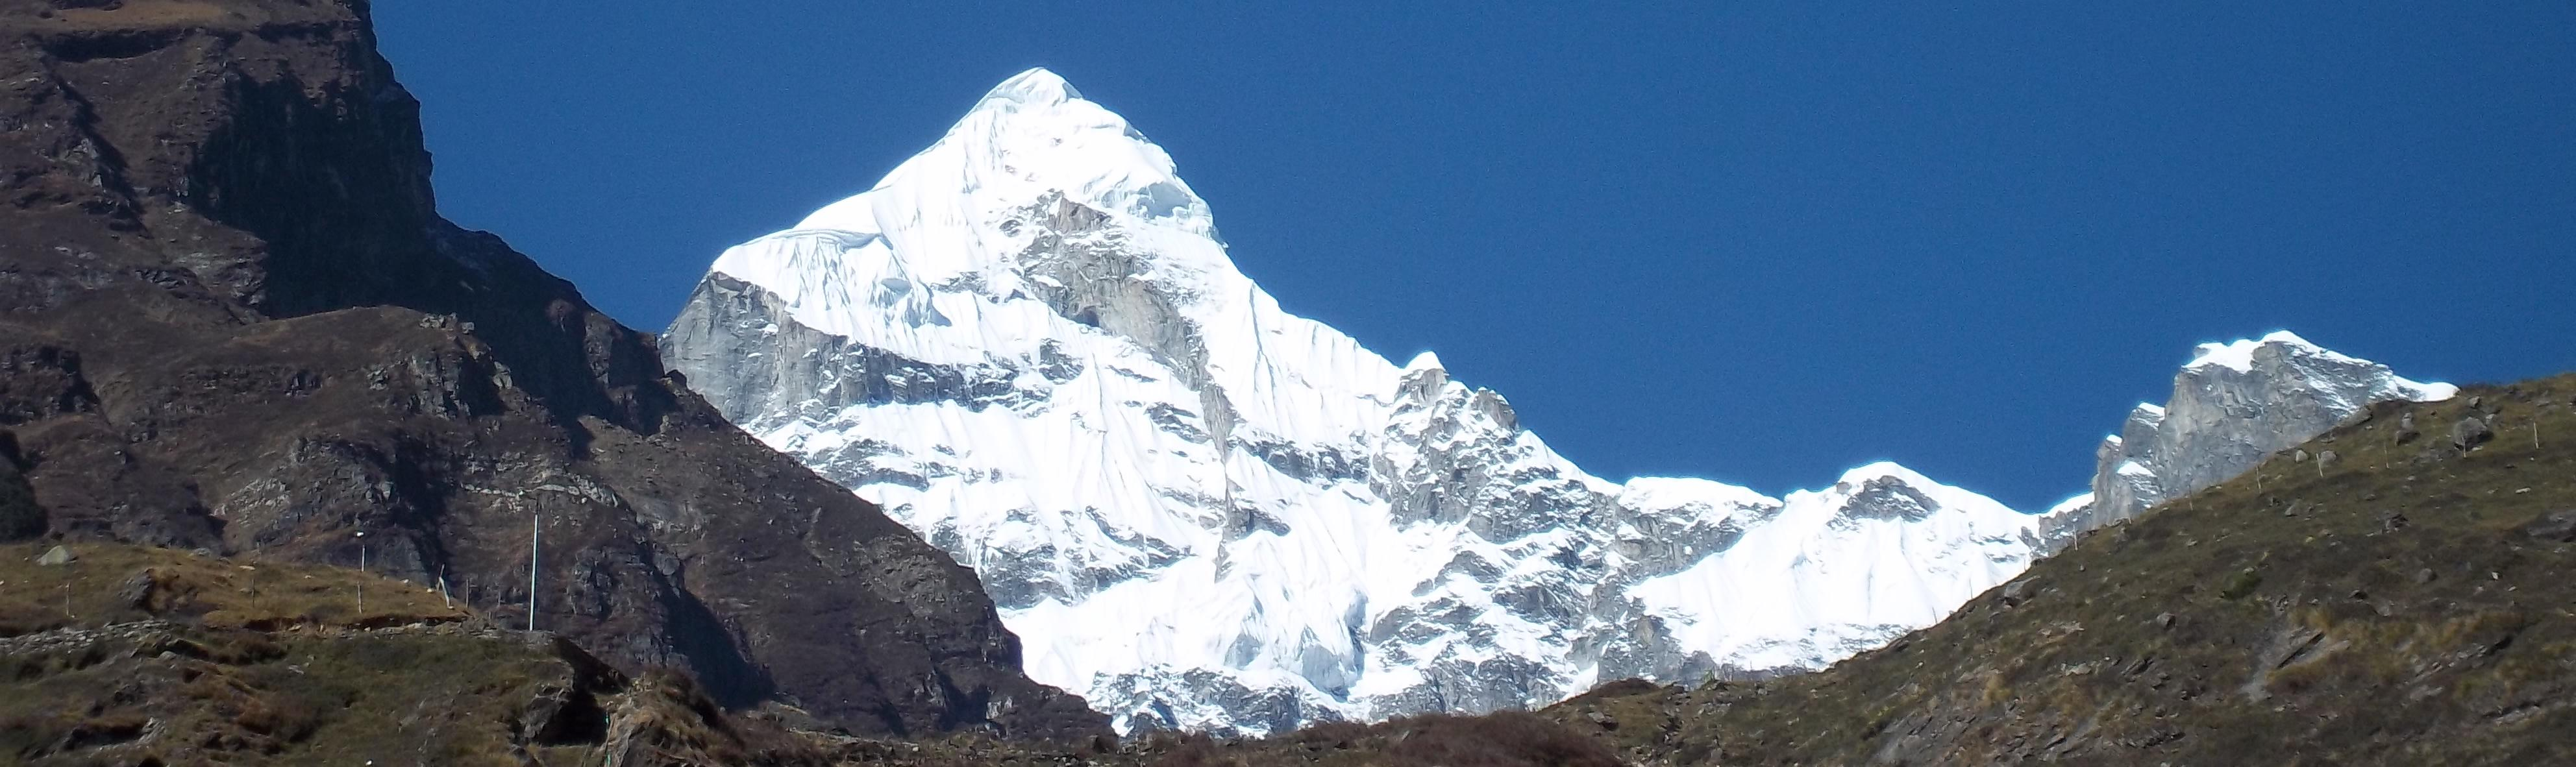 Mt Neelkanth Peak Expedition